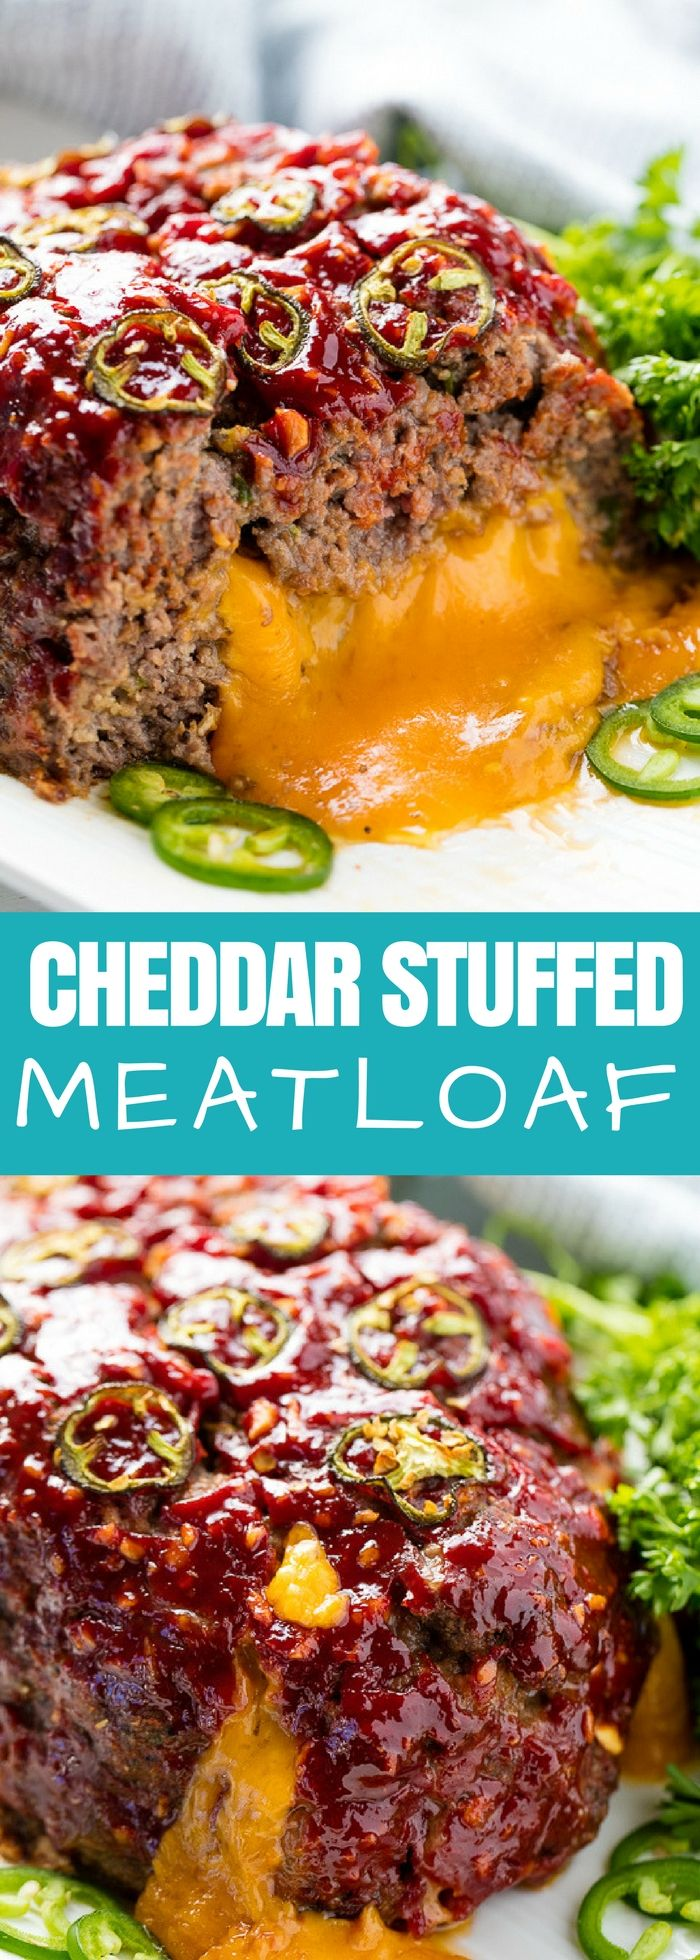 This easy meatloaf recipe is for cheese lovers only! There's an entire 8 ounce brick of ooey gooey melted cheddar cheese in the middle of this Jalapeno Cheddar Stuffed Meatloaf that takes it over the top!